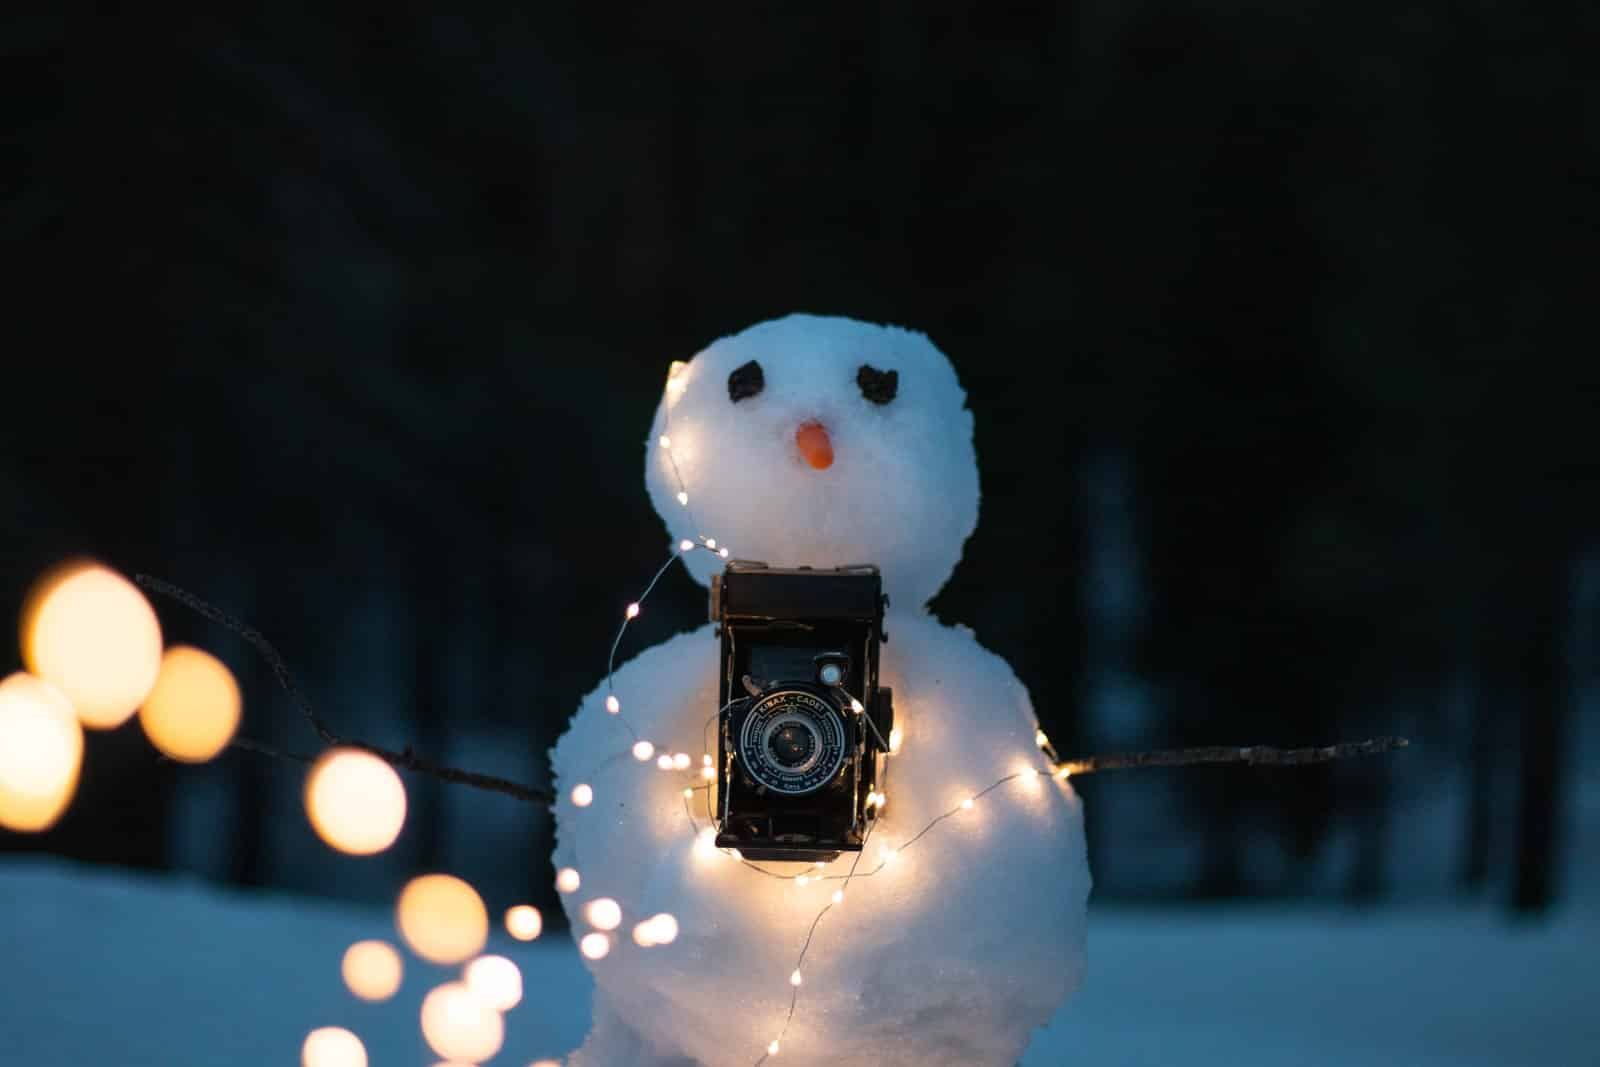 snowman with lighted string lights and black DSLR camera